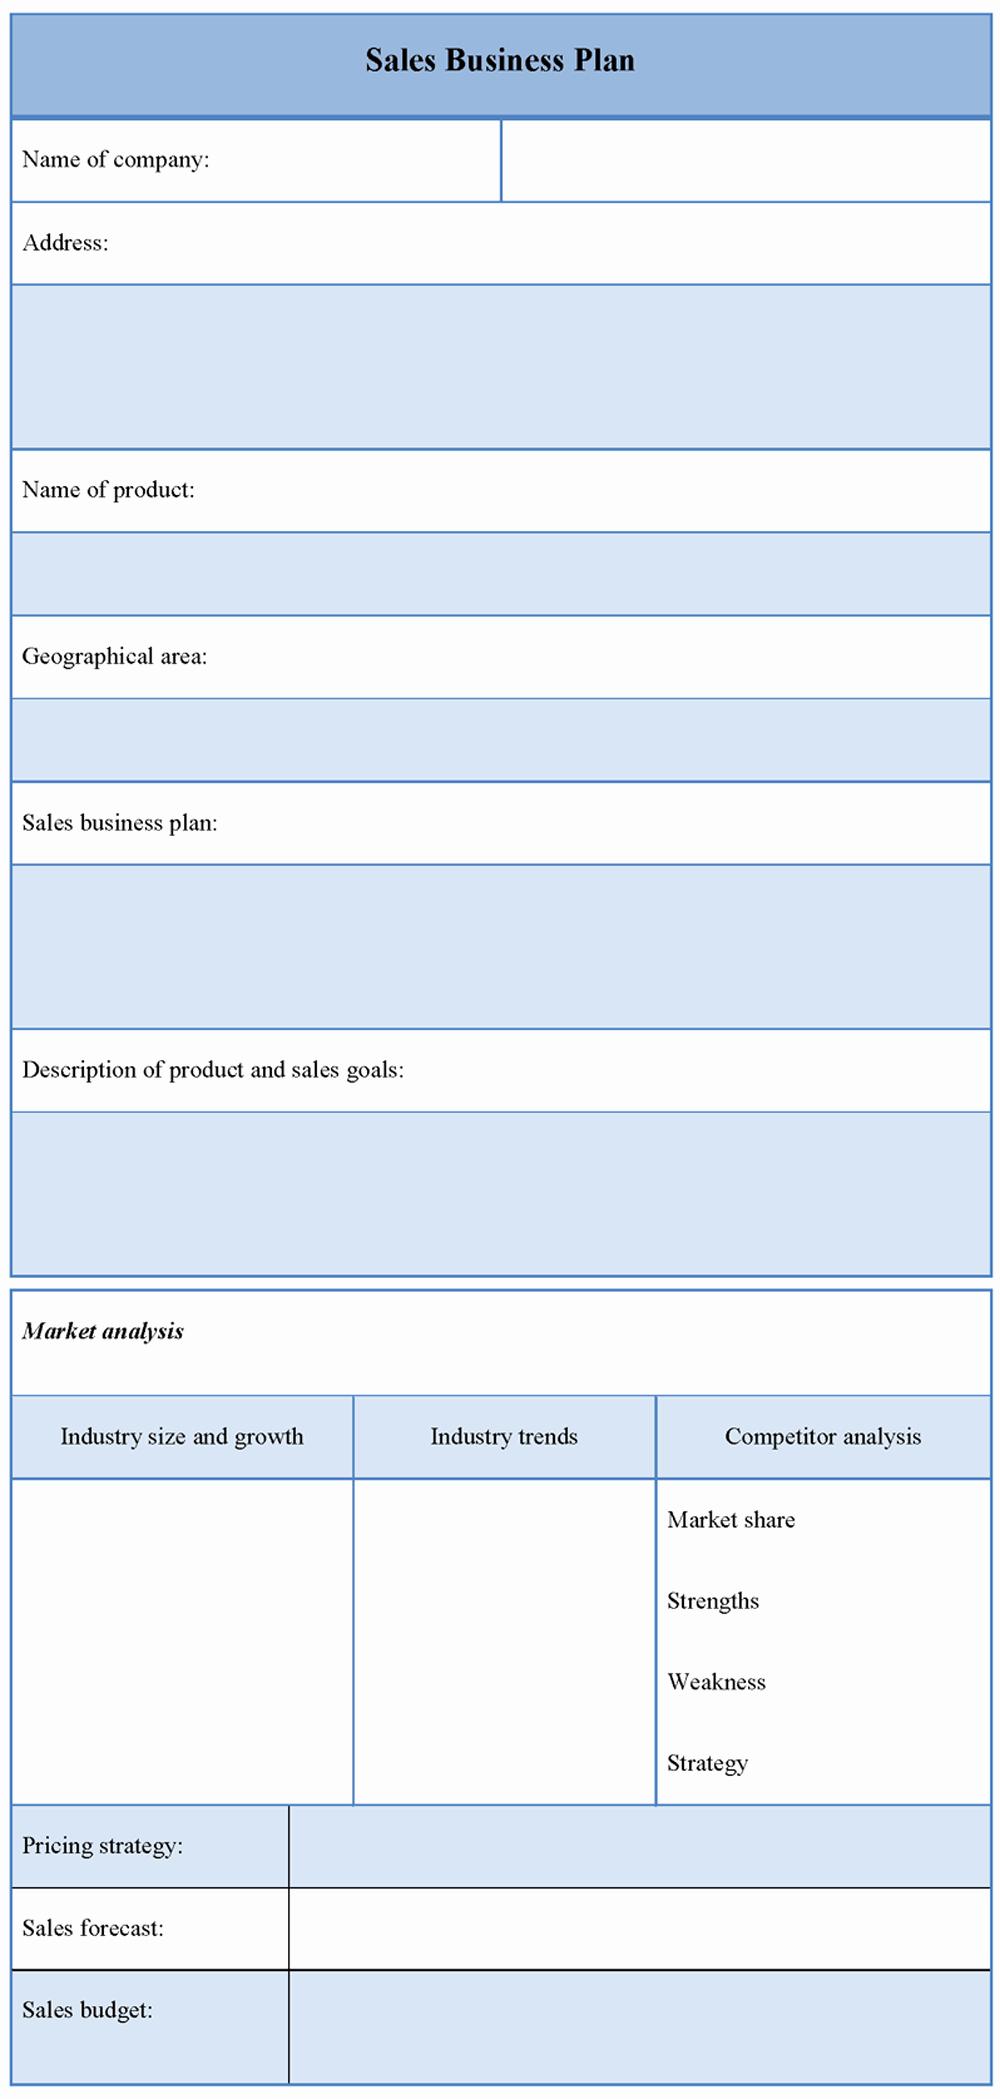 Sales Business Plan Template Fresh Plan Template for Sales Business Sample Of Sales Business